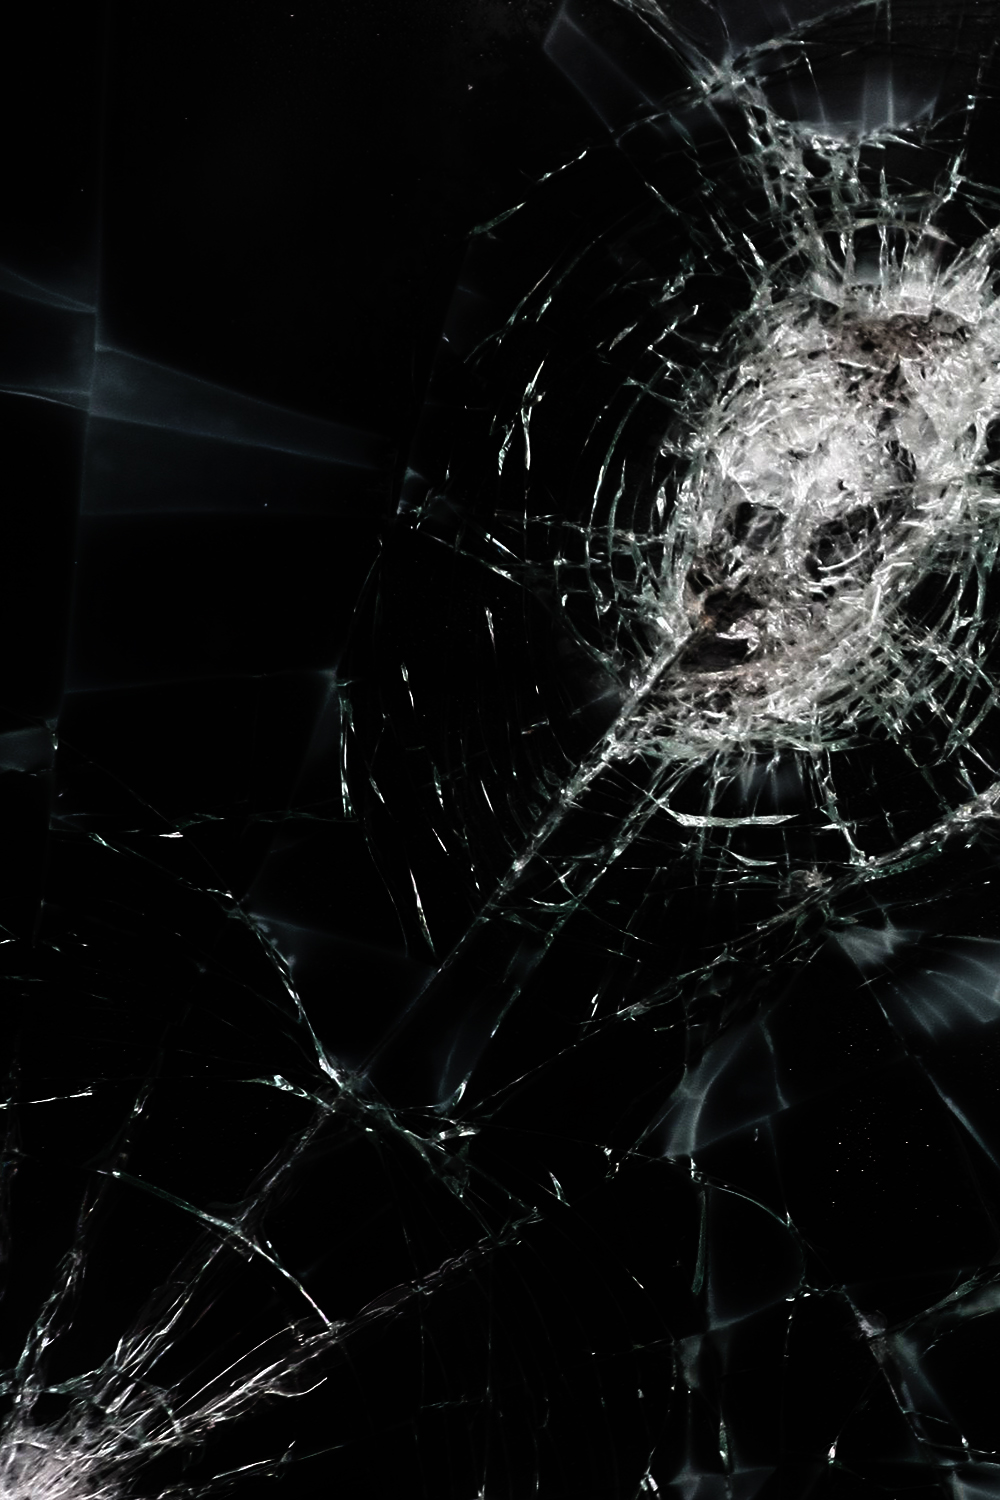 Broken Screen Wallpaper 4k Broken Screen Wallpaper 4k Download Broken Screen Wallpaper 3d Downl Broken Screen Wallpaper Screen Wallpaper Hd Cracked Wallpaper